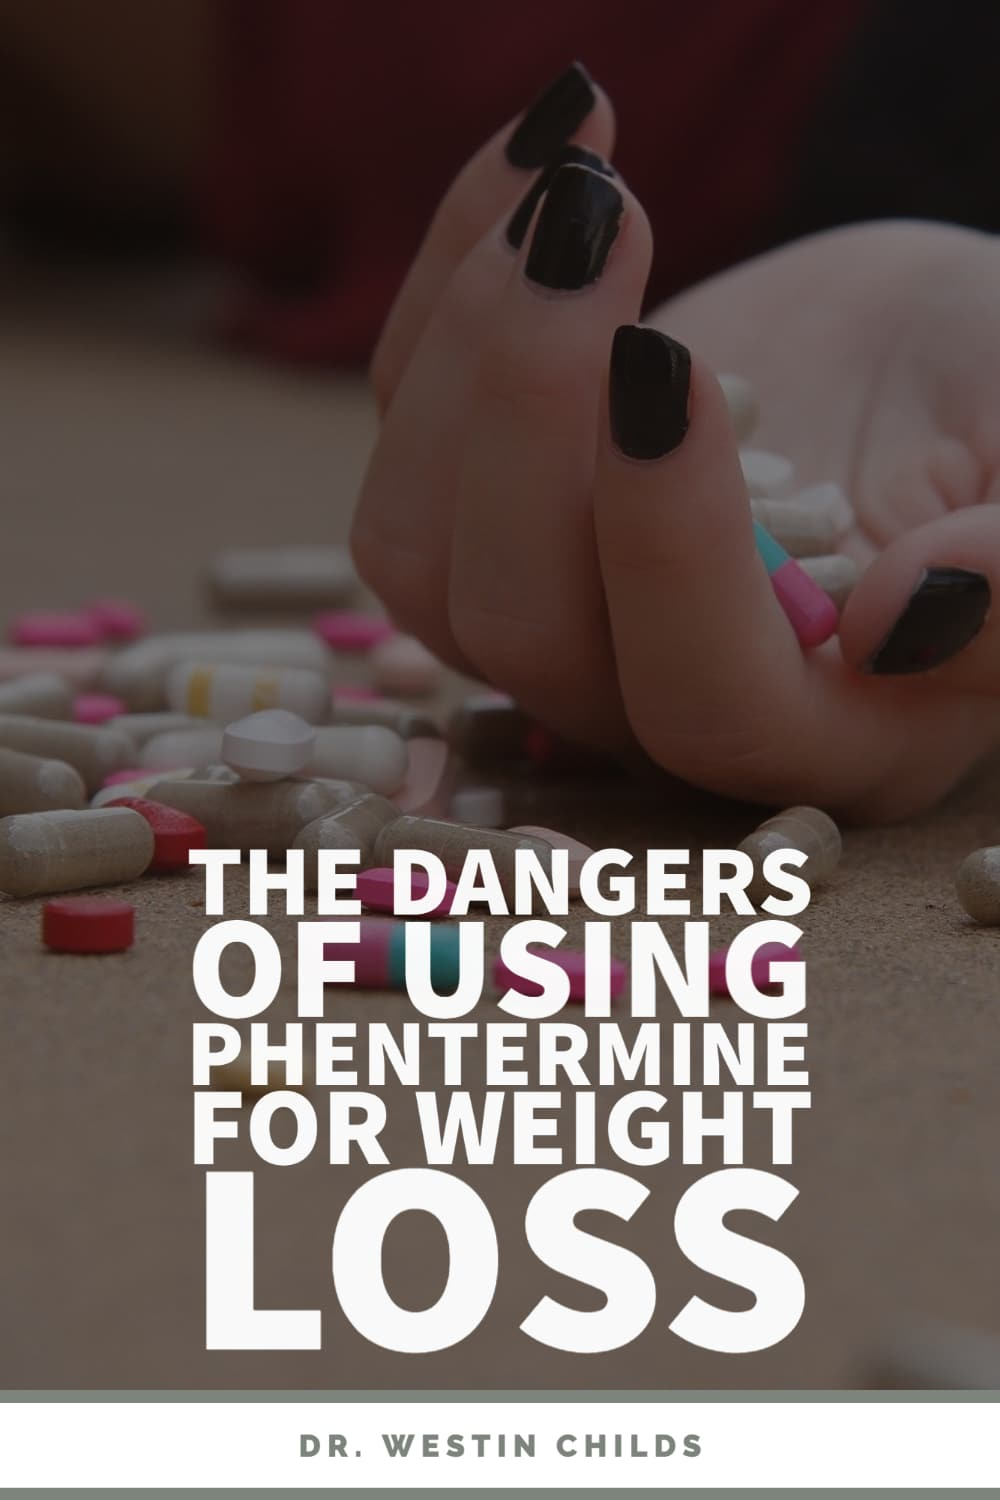 4 big reasons to avoid using phentermine for weight loss